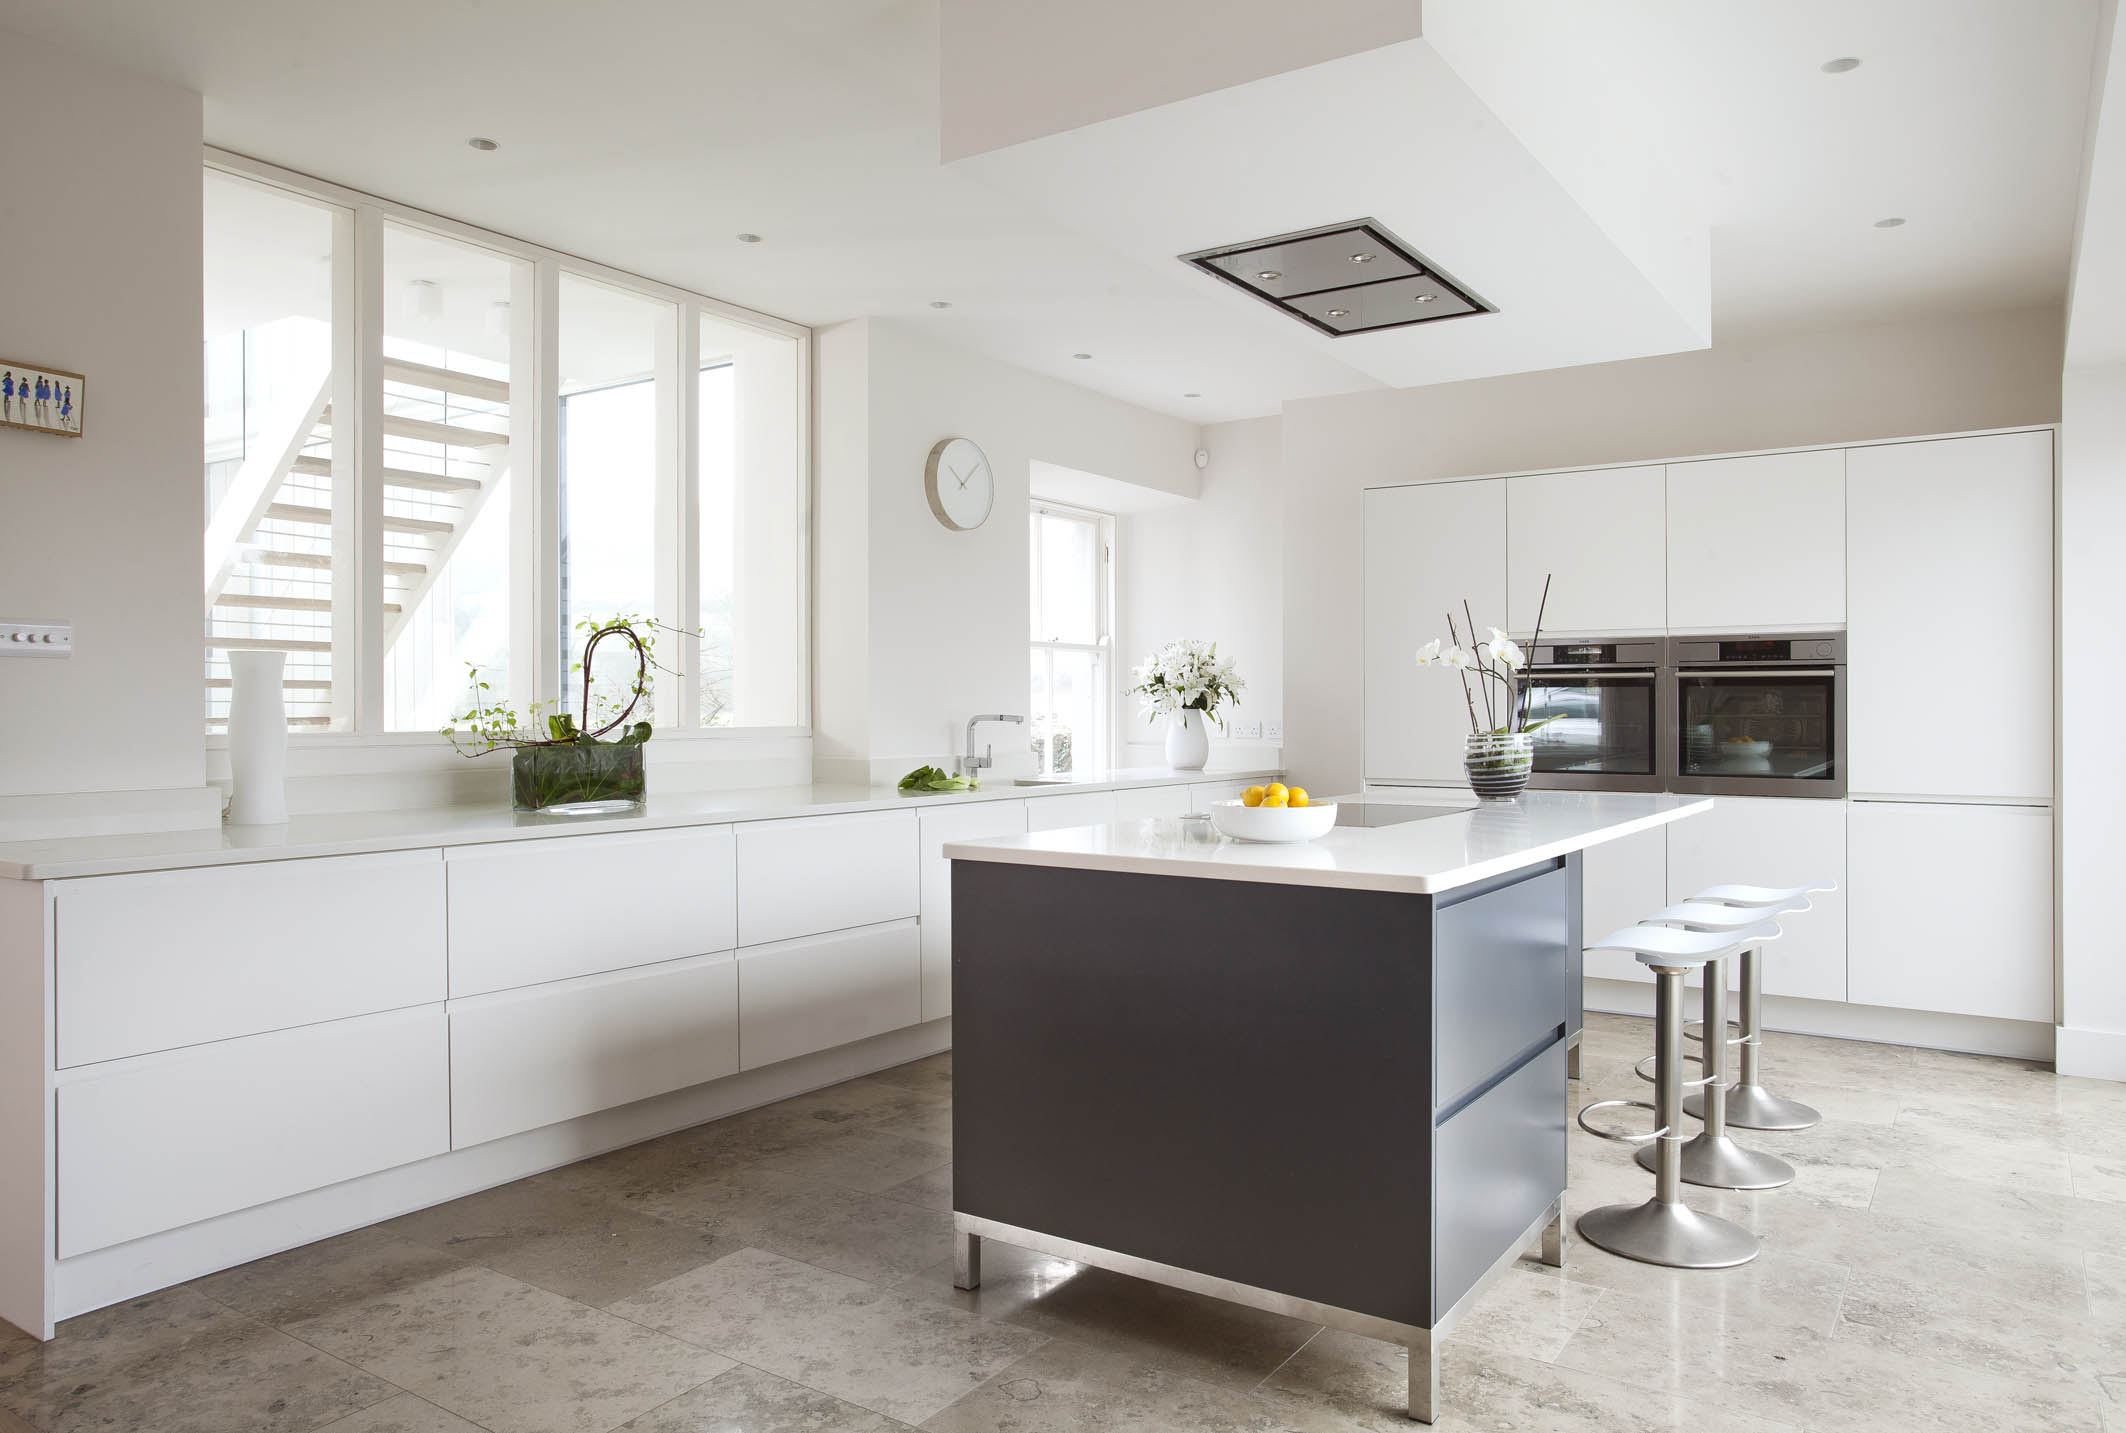 Contemporary German Style Dublin Kitchen Painted In Farrow And Ball White And Railings